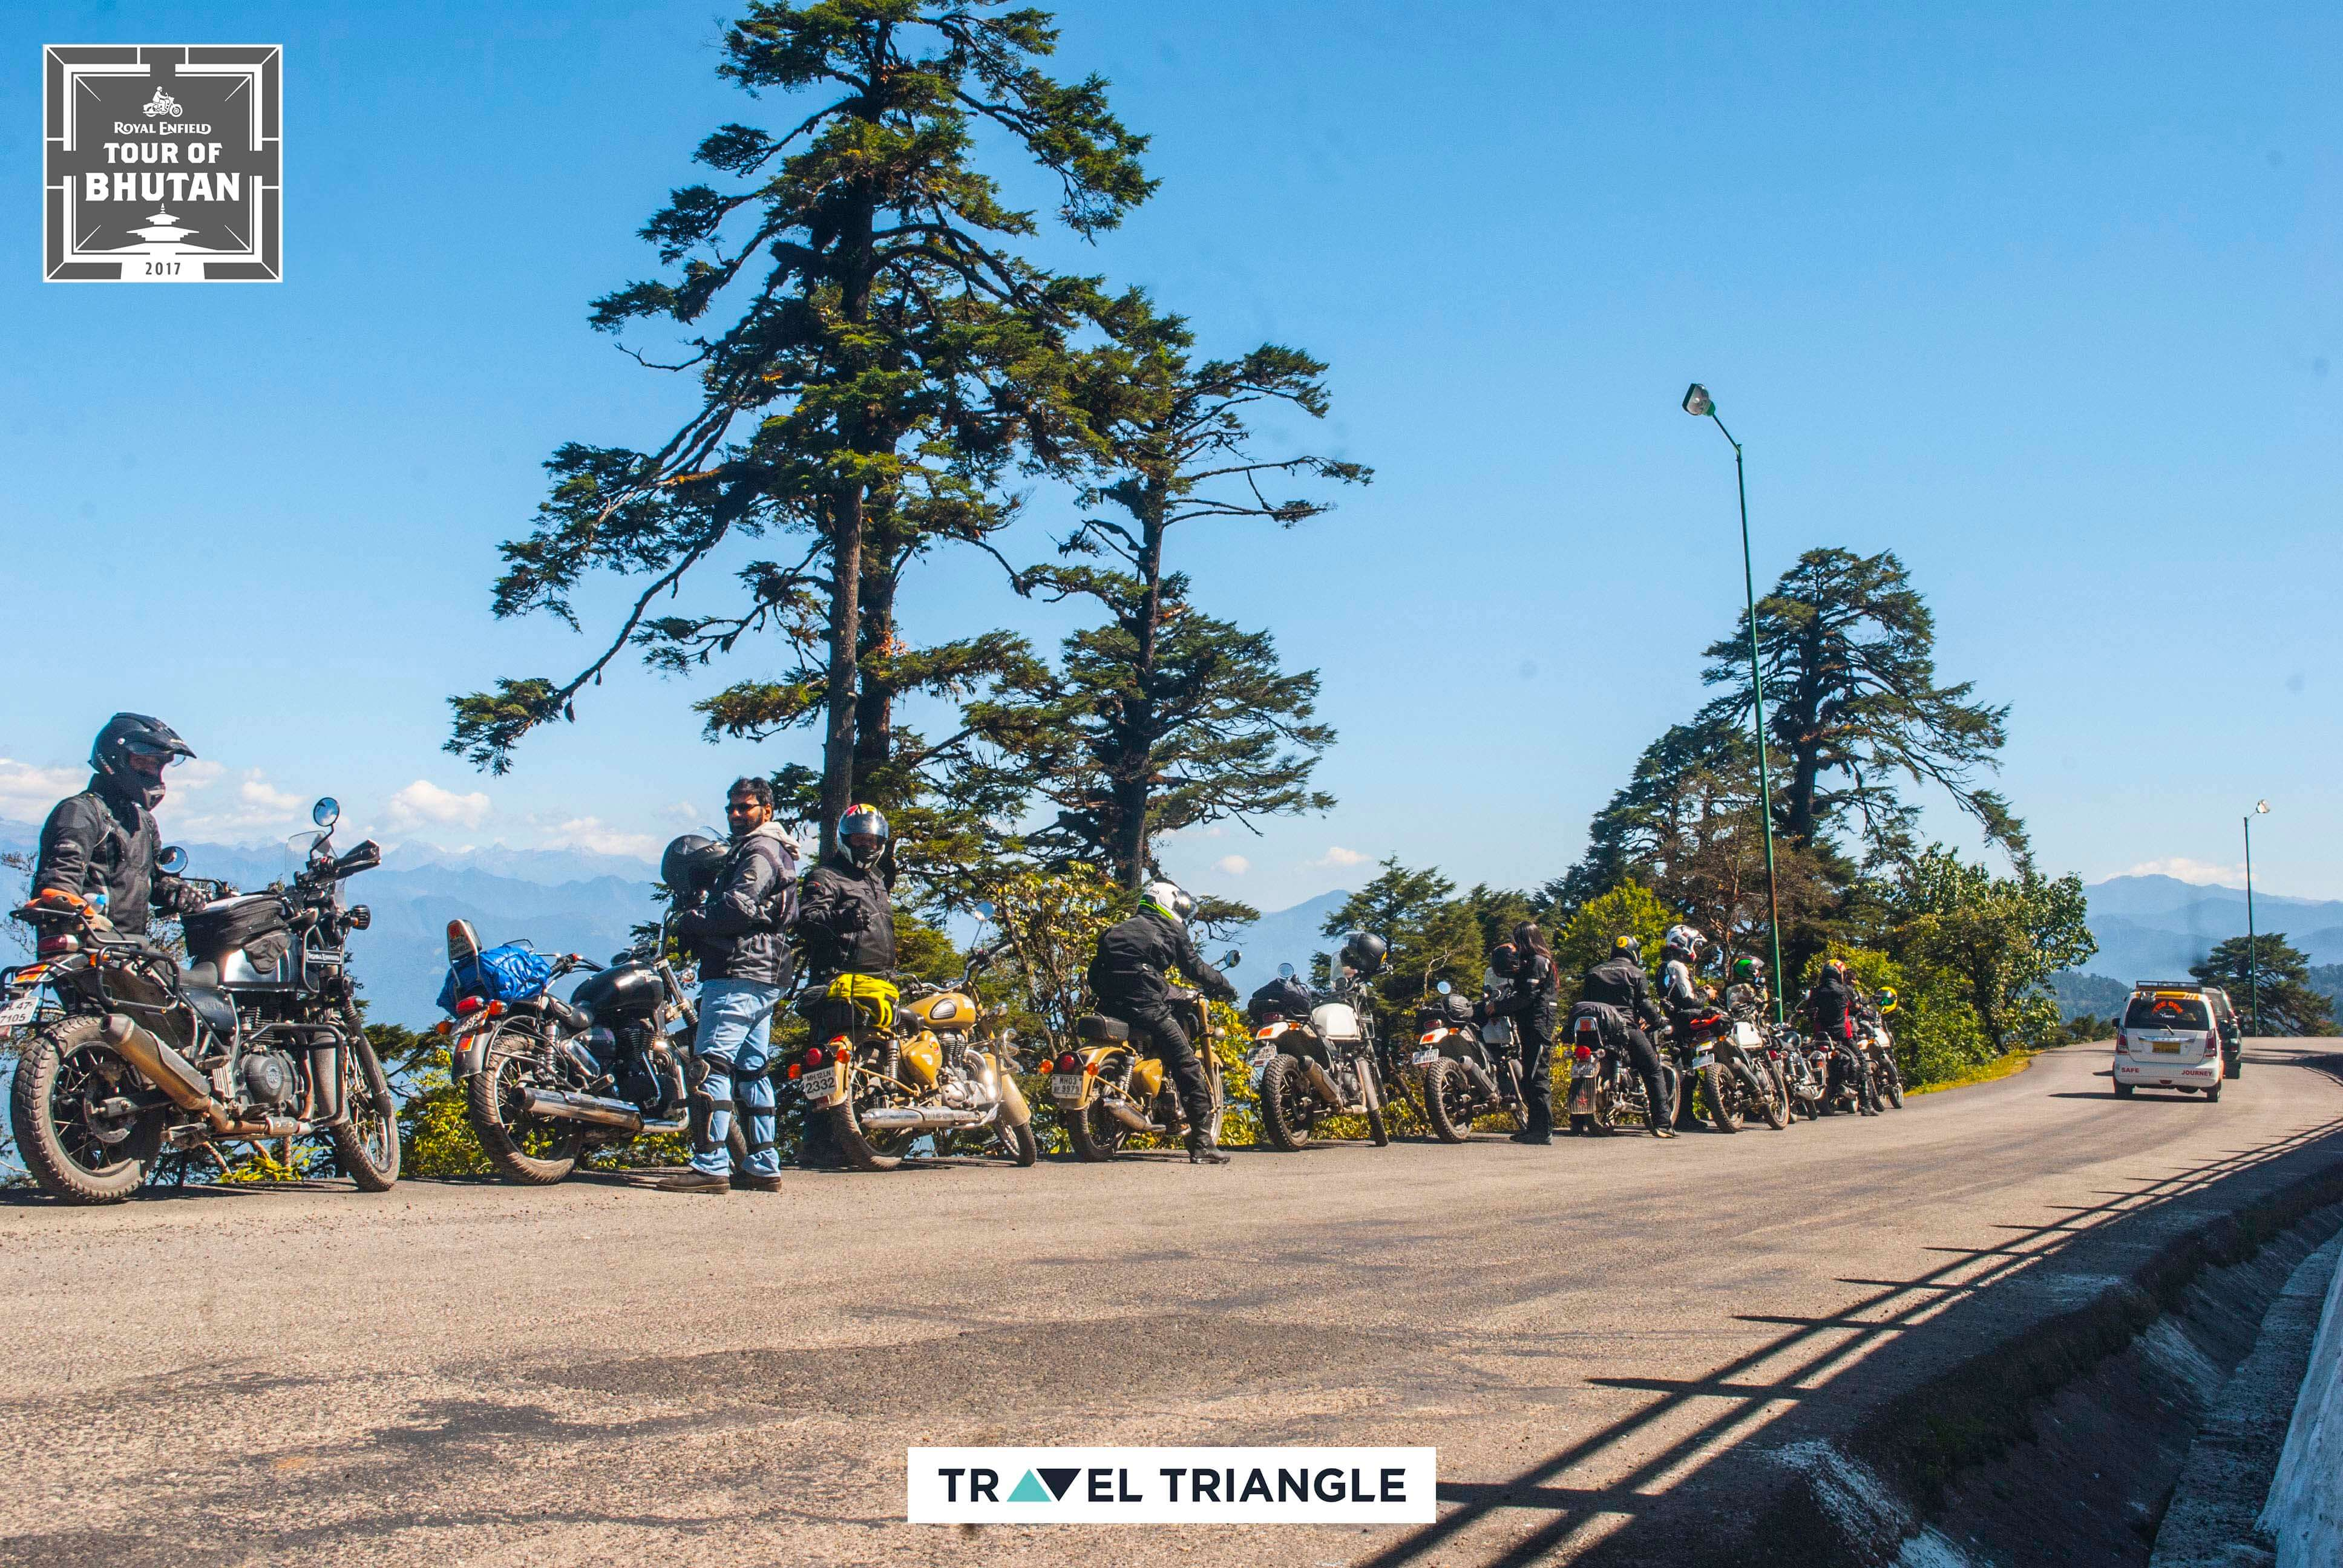 Thimphu to Punakha: the riders